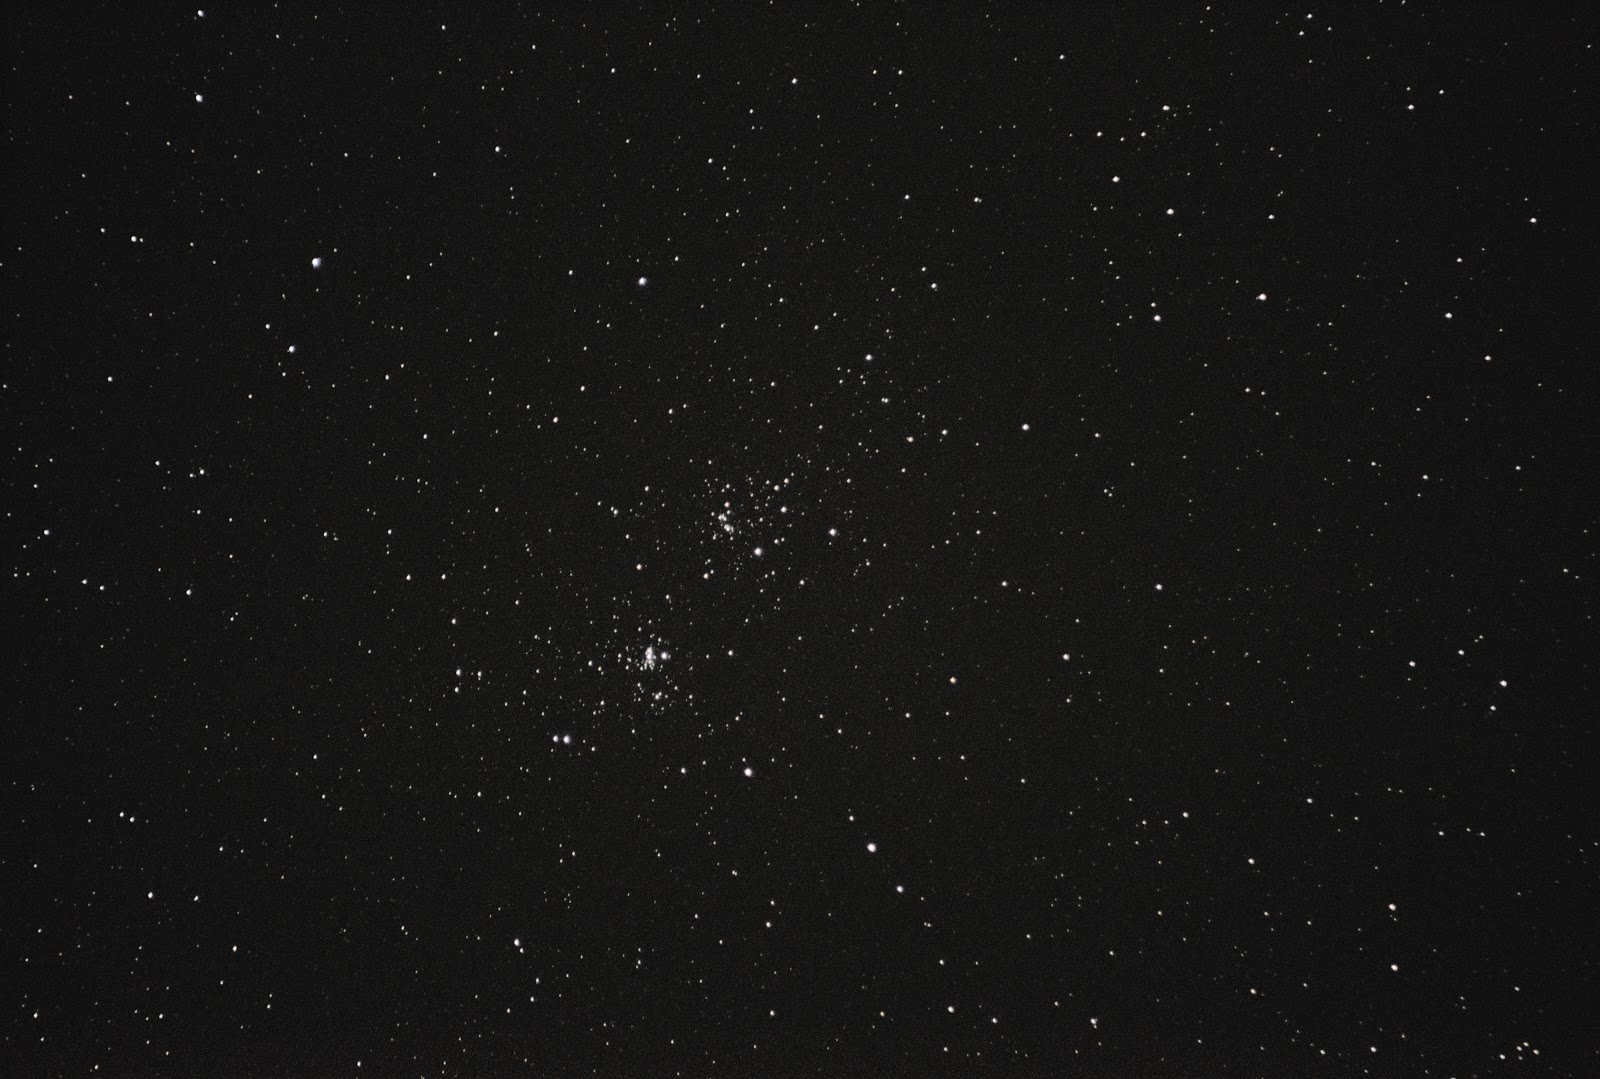 alpha star cluster - photo #23